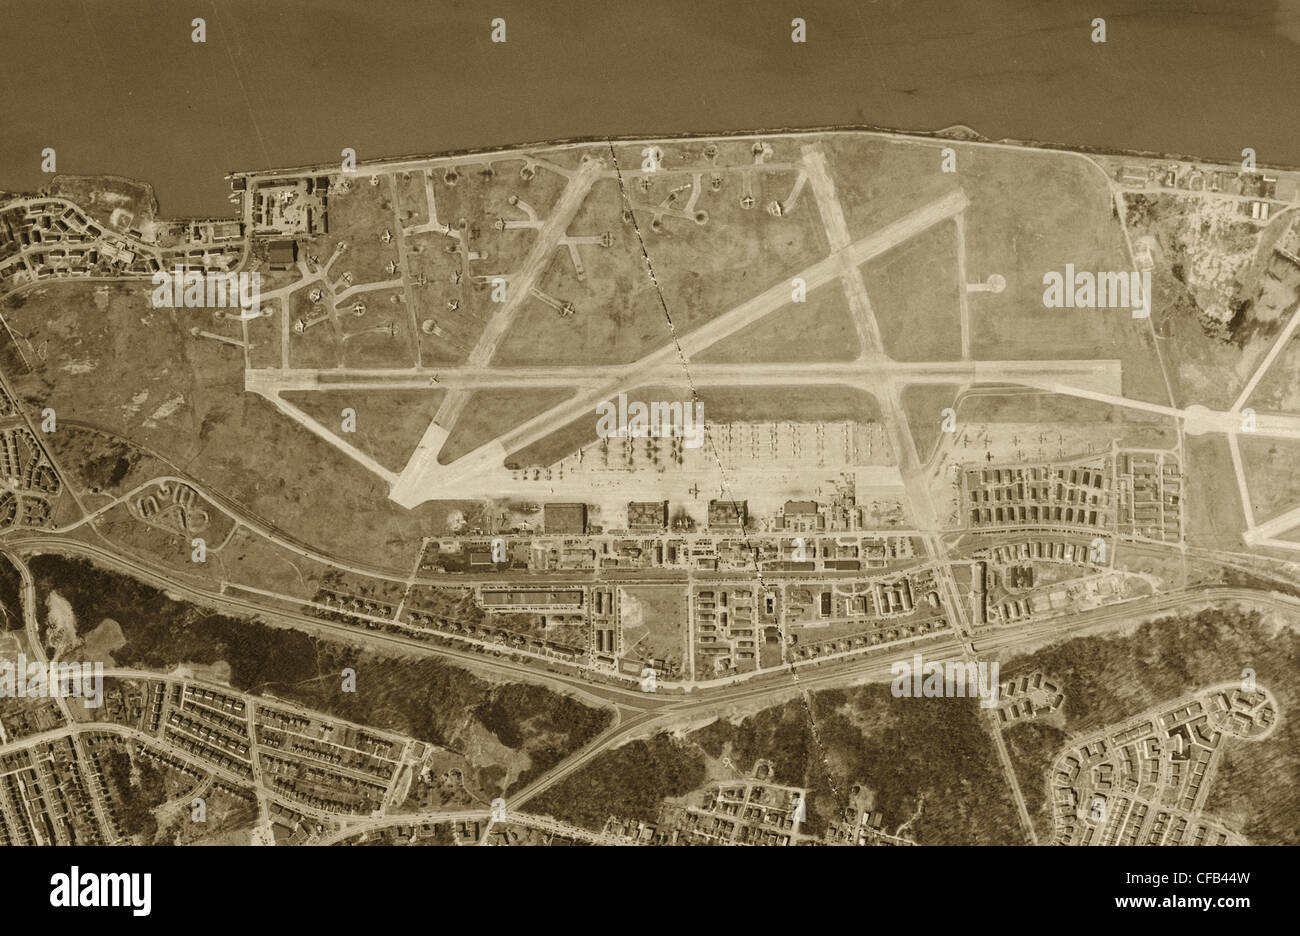 historical aerial photograph Bolling Air Force Base Washington D.C., 1949 - Stock Image